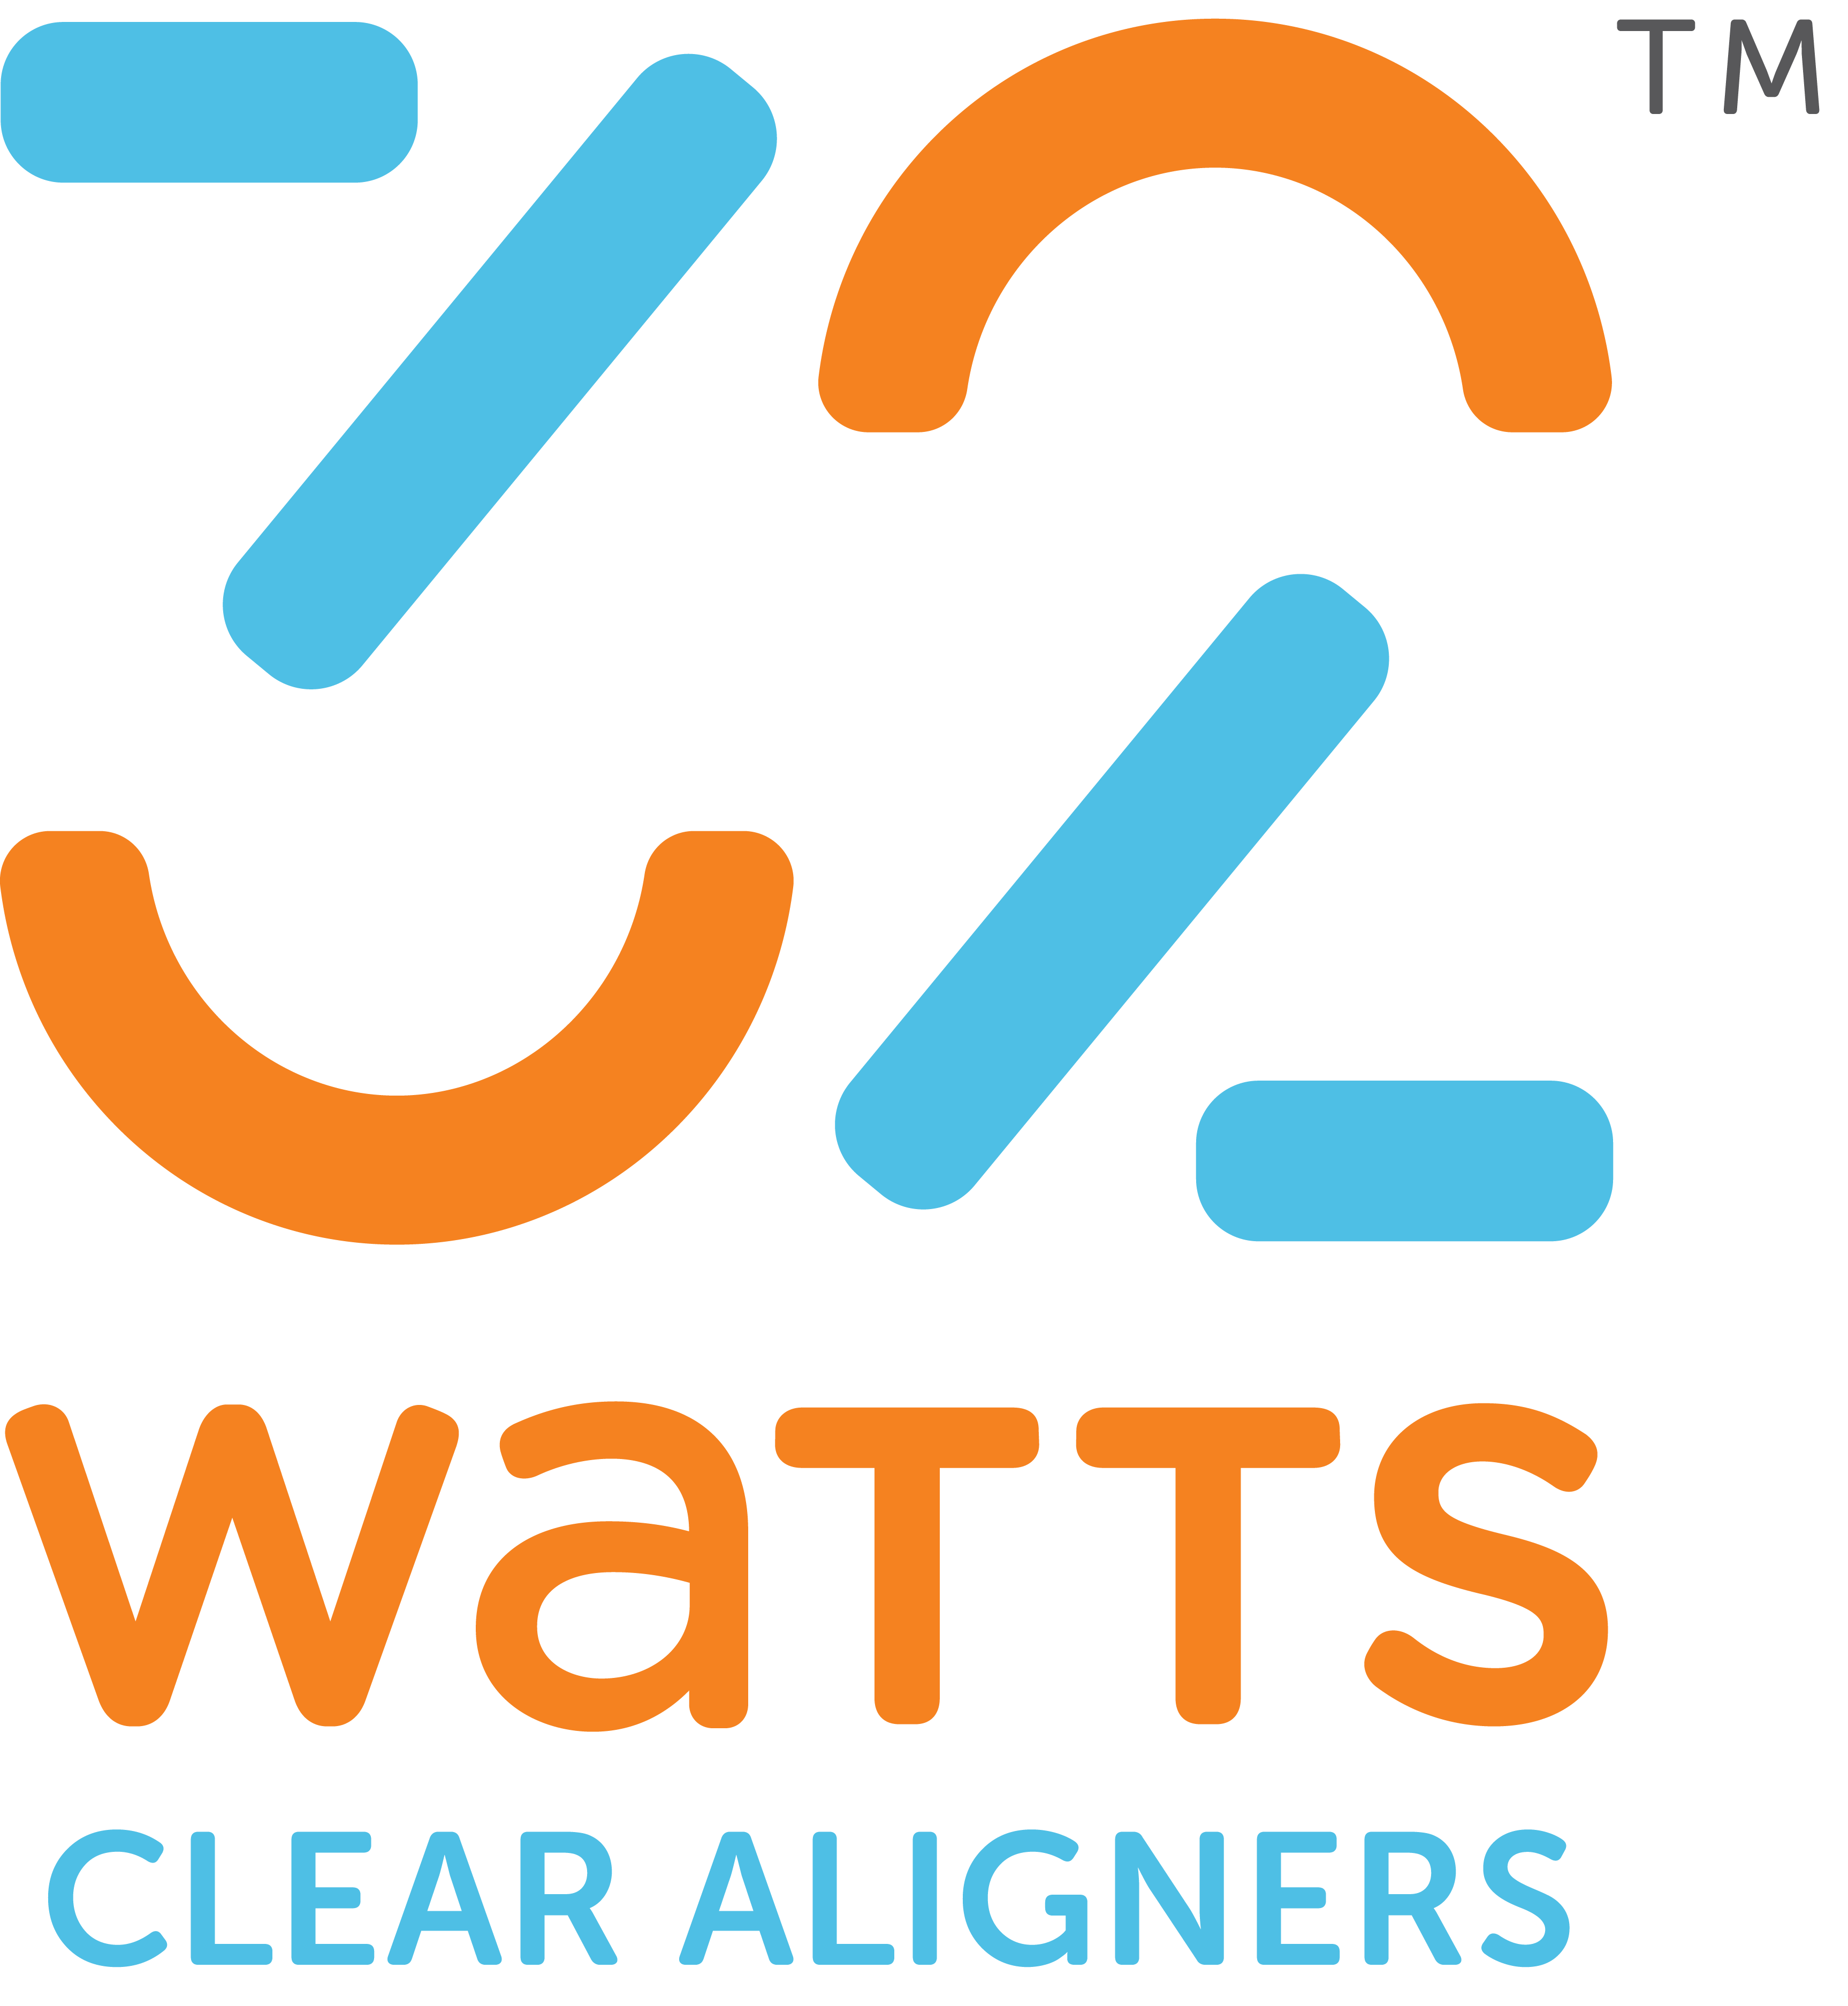 32 watts Clear Aligner TM